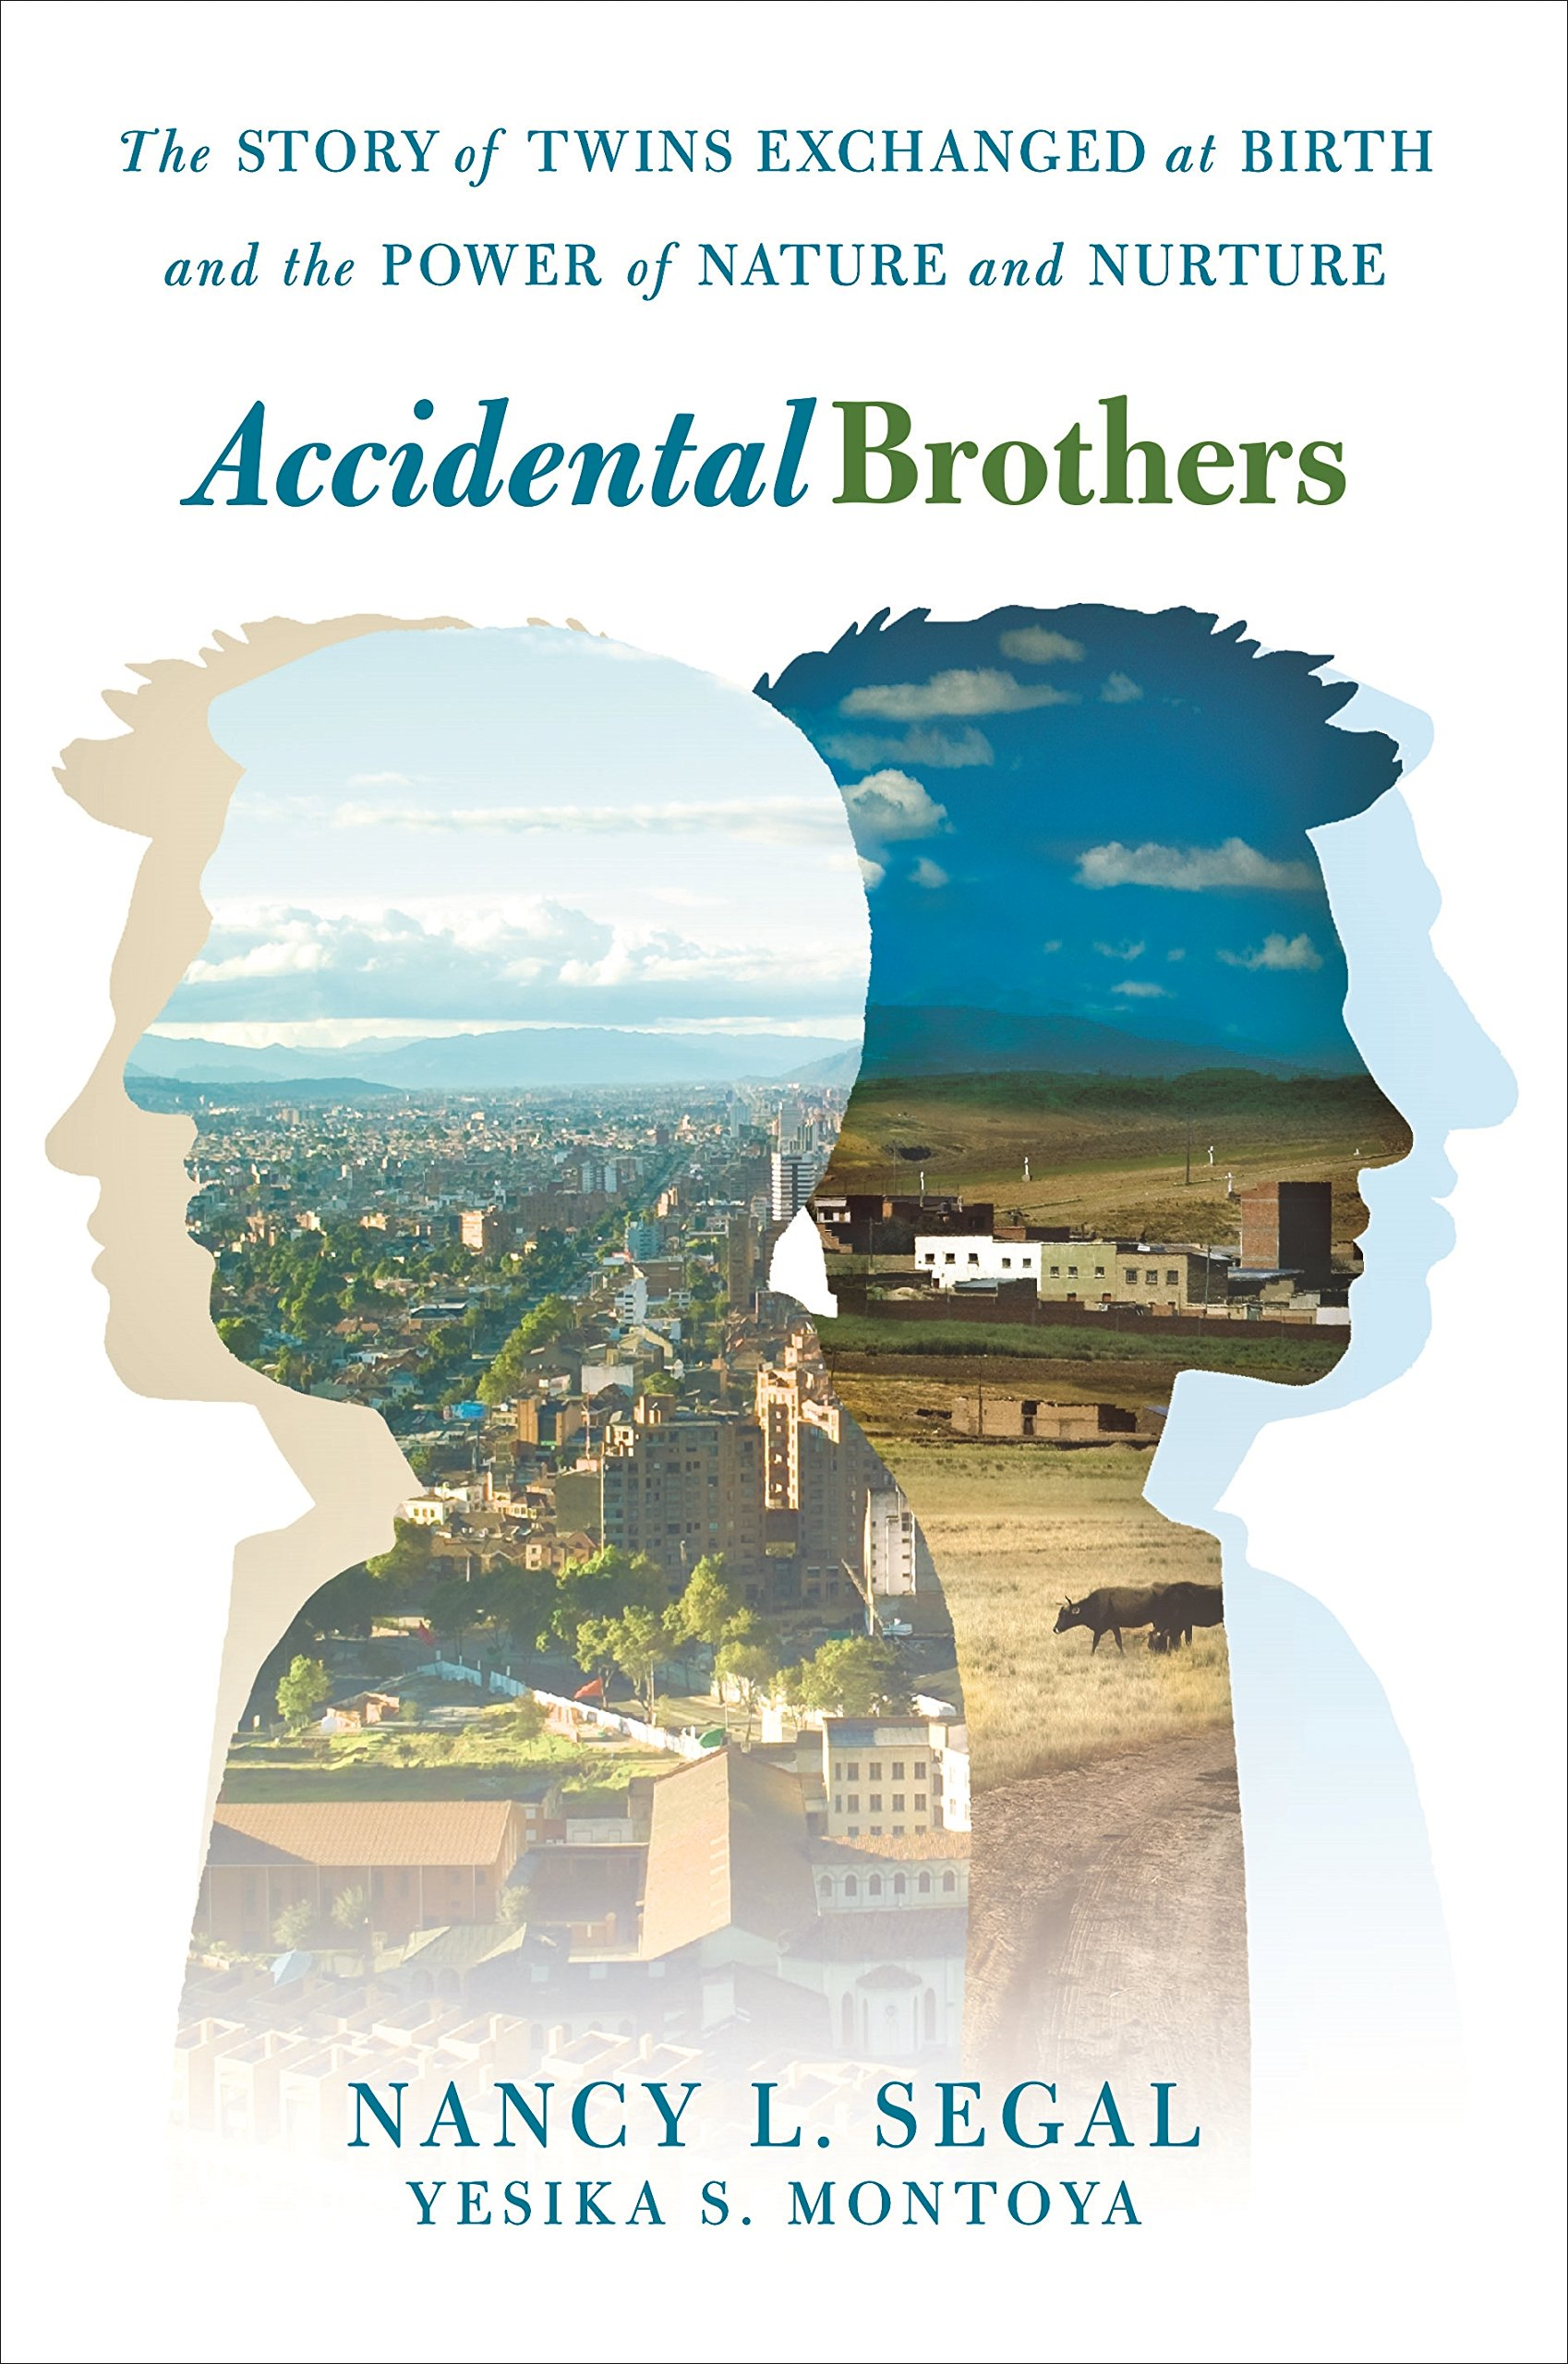 Accidental brothers the story of twins exchanged at birth and the accidental brothers the story of twins exchanged at birth and the power of nature and nurture dr nancy l segal yesika s montoya 9781250101907 fandeluxe Image collections